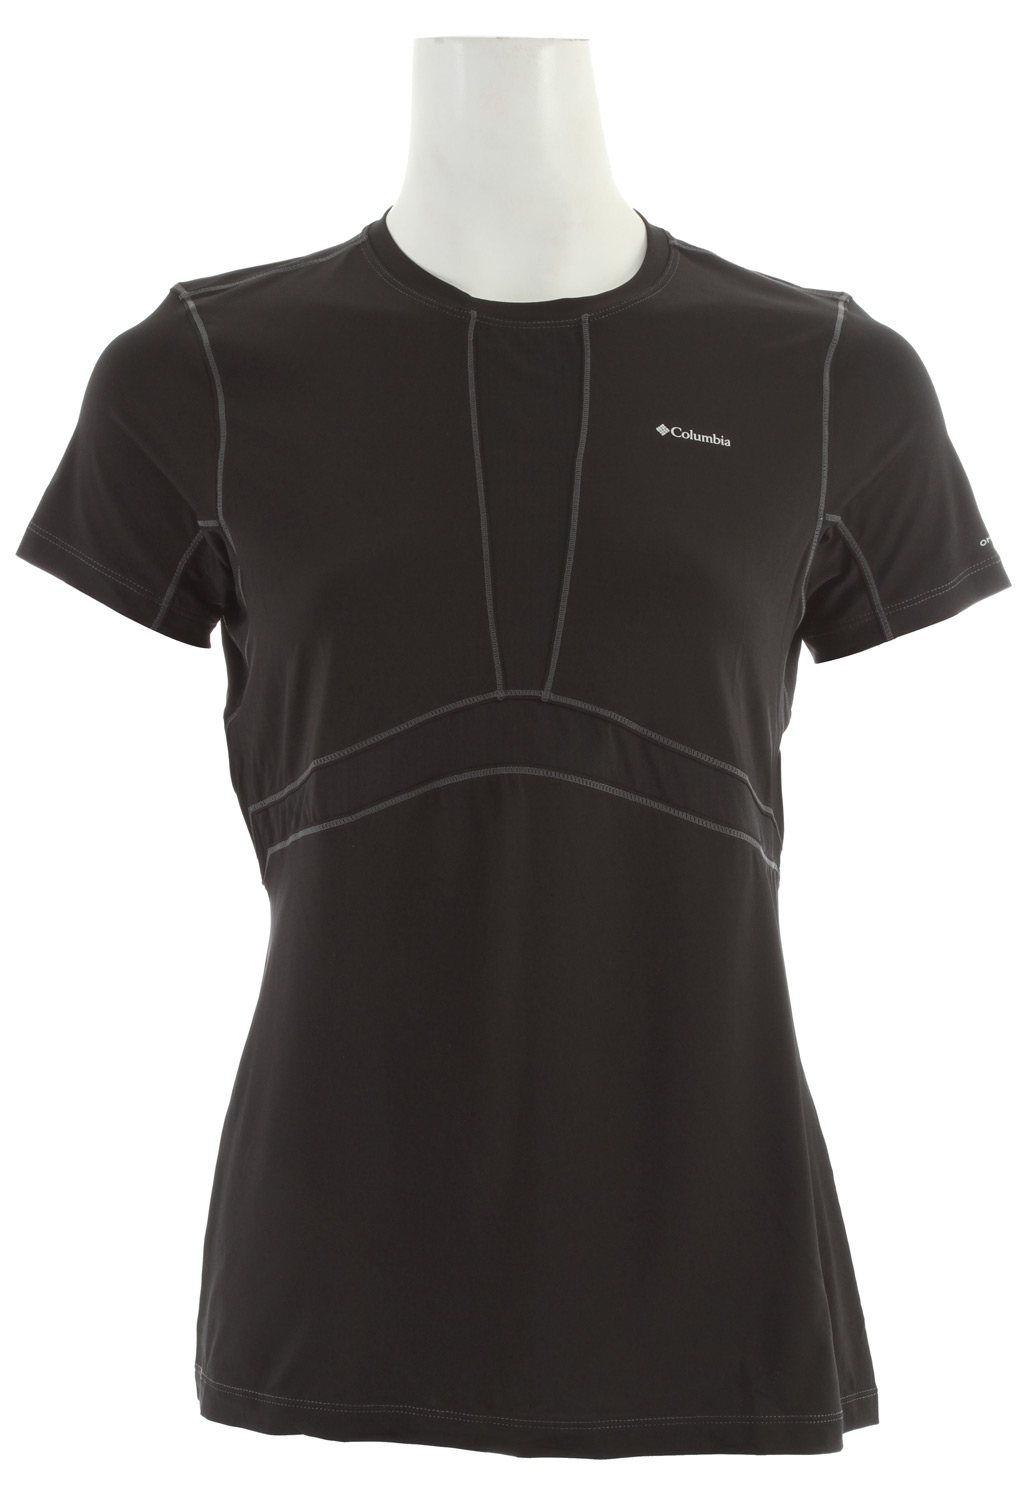 Columbia Baselayer Lightweight S/S Top Black - $32.95